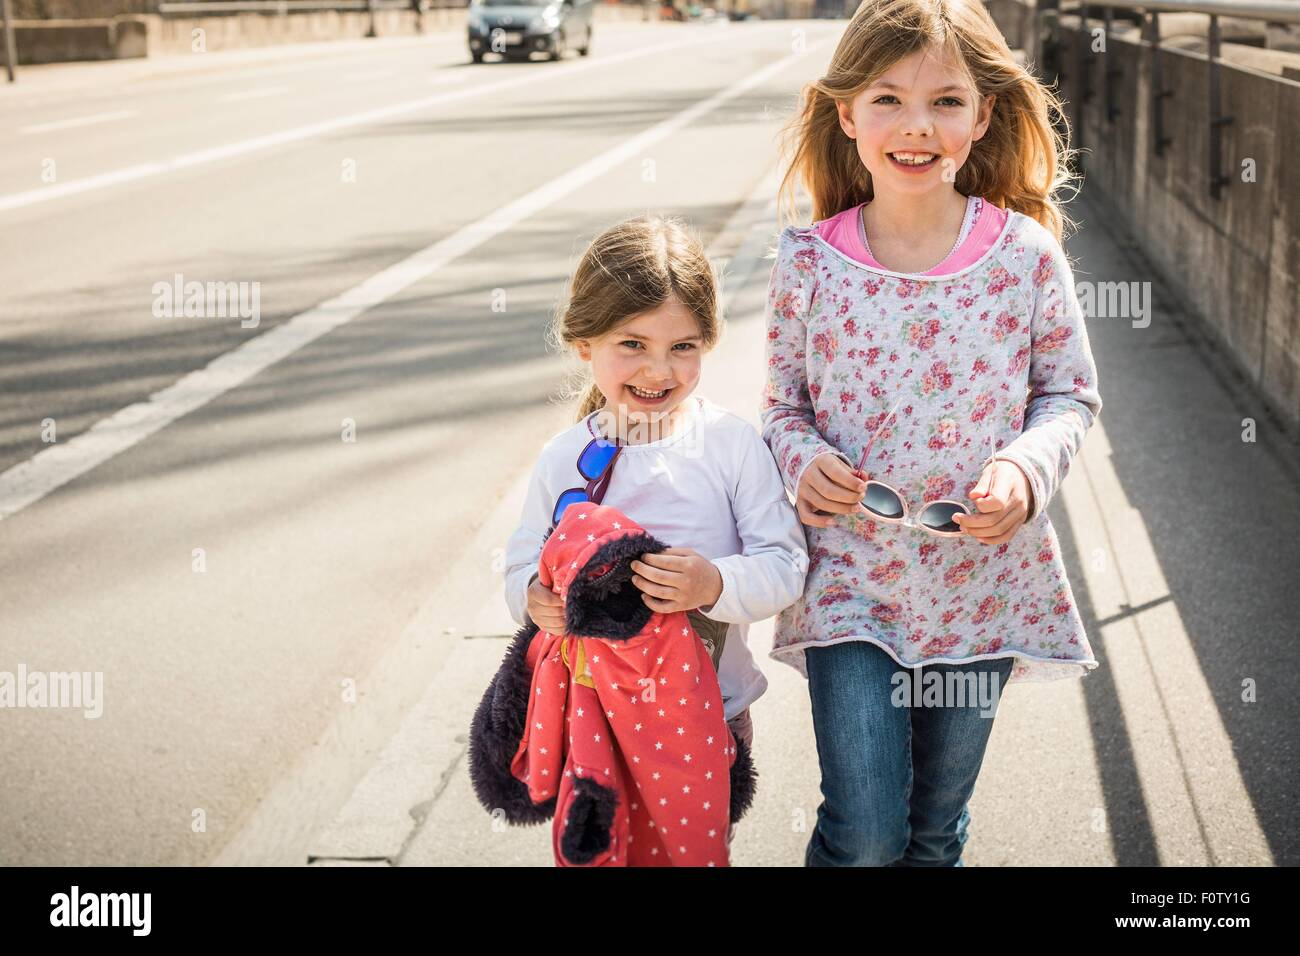 Two young girls walking down street together, smiling - Stock Image